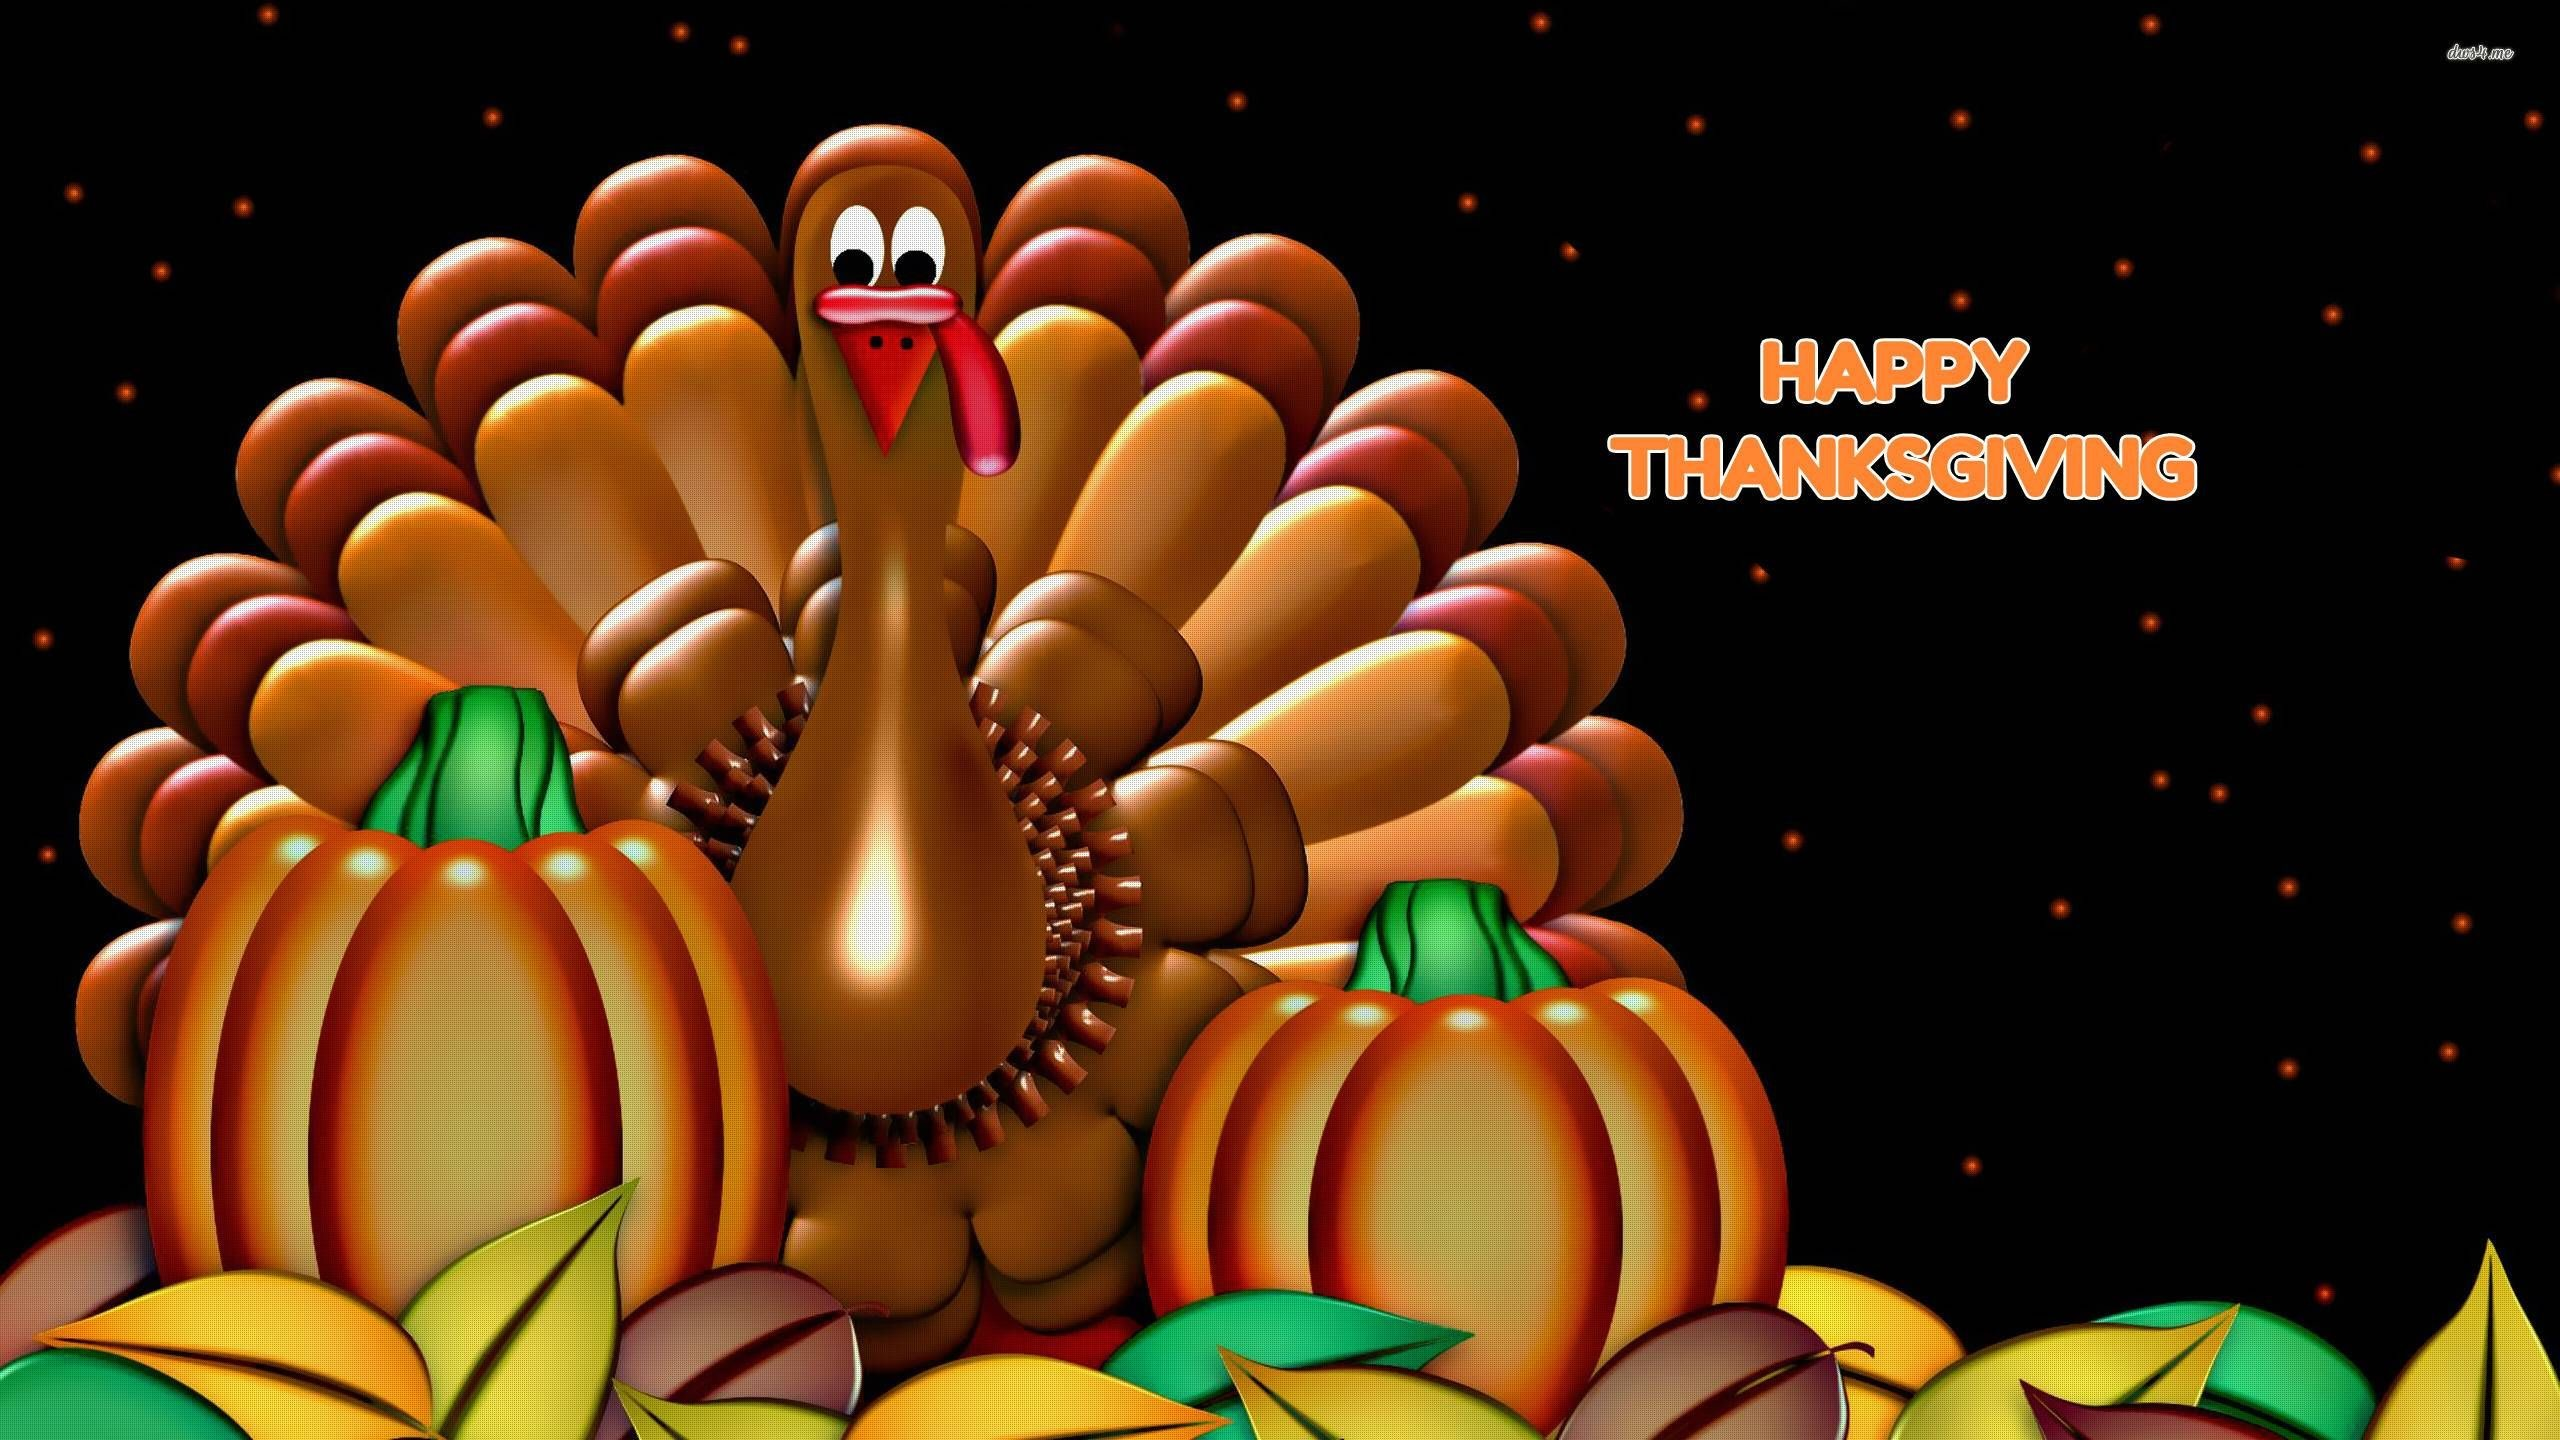 1920x1080 Image For Good Thanksgiving Wallpaper 123 By Ws